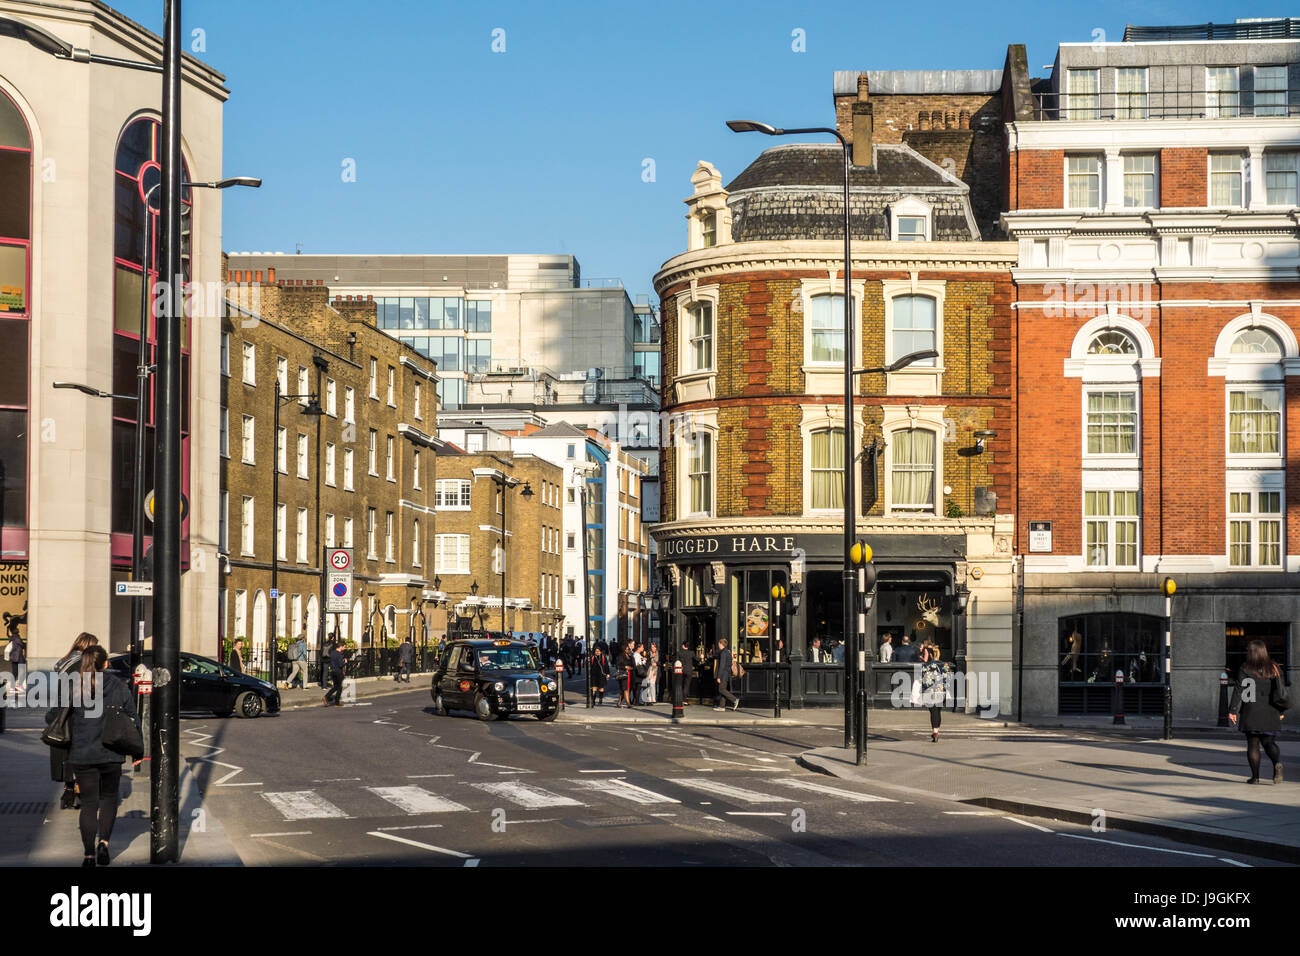 Pedestrian crossing on Beech Street towards Chiswell Street with The Jugged Hare pub / gastropub. City of London, - Stock Image